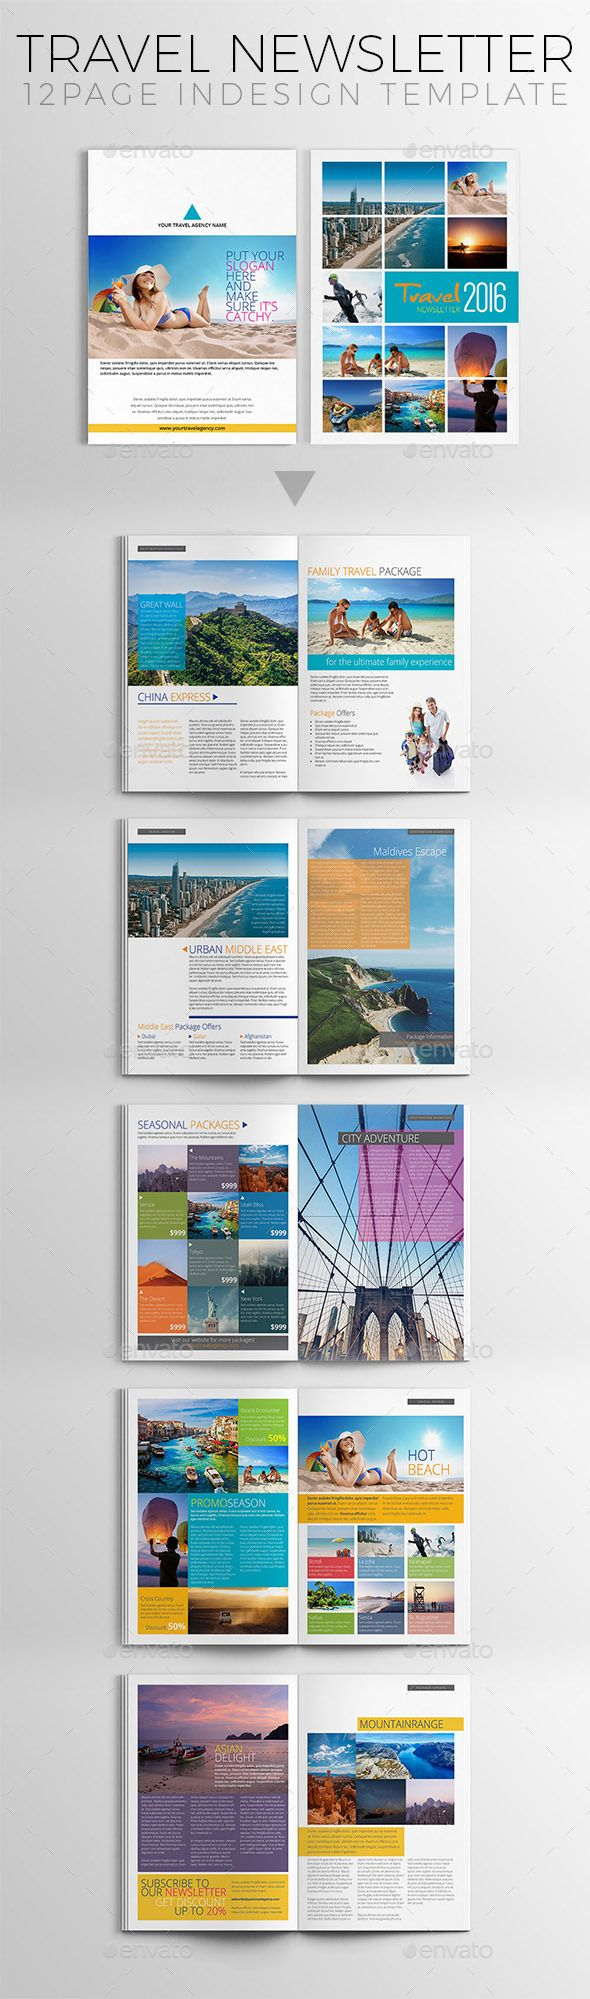 printed newsletter template